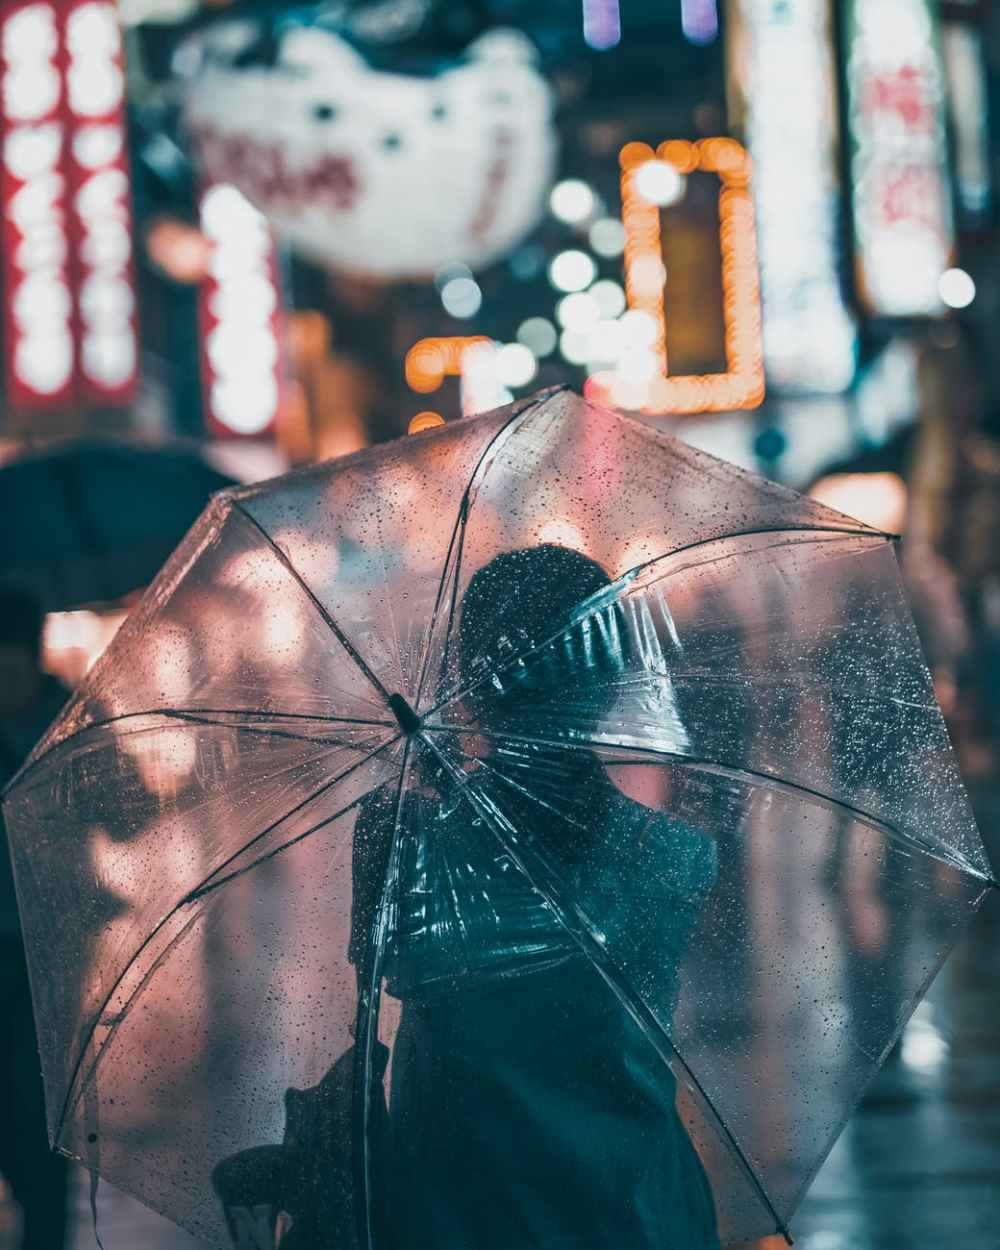 the back of a woman under a transparent wet umbrella on a city street at night